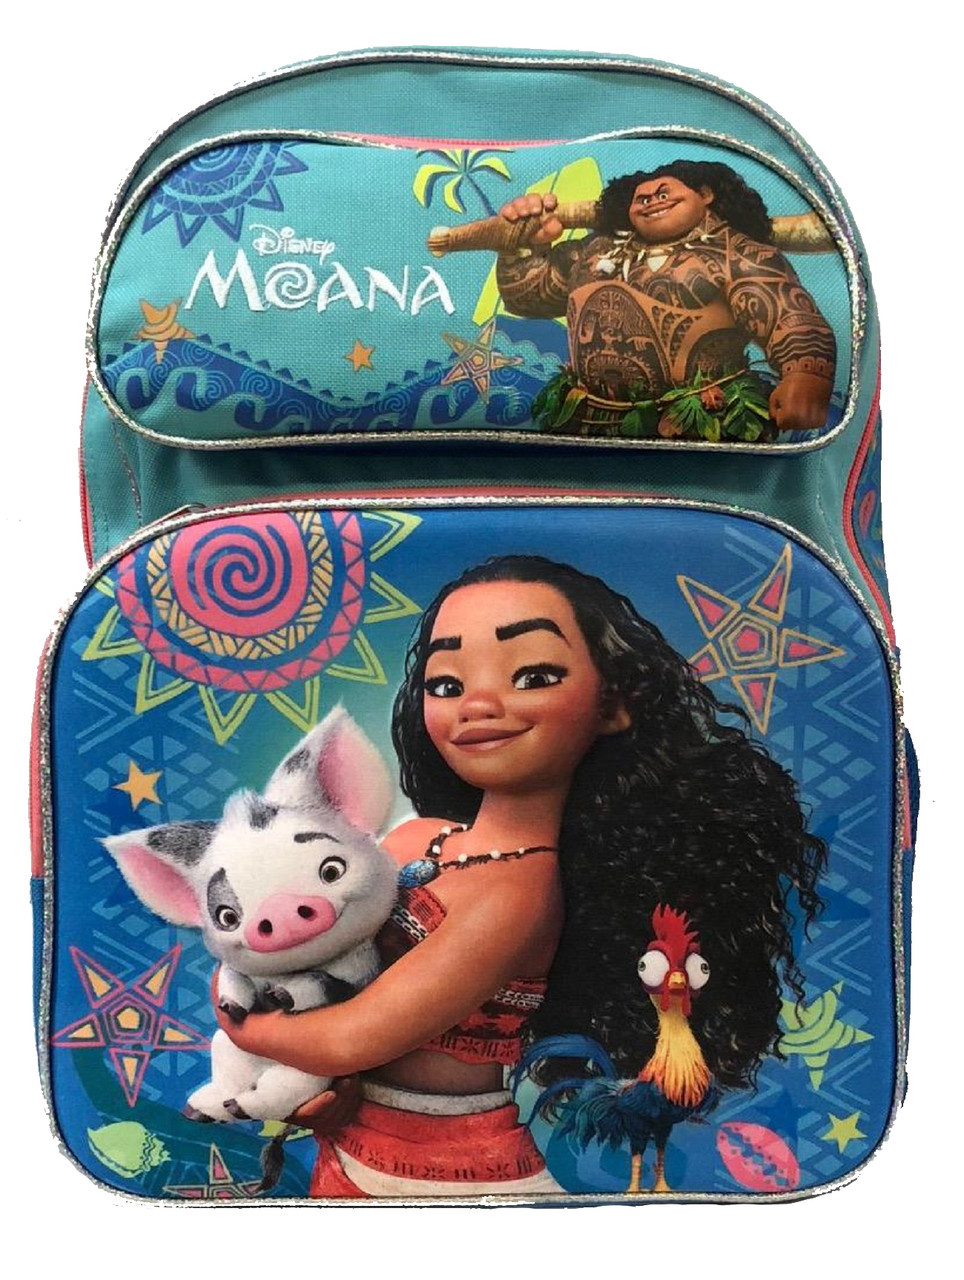 Moana 3D Backpack - 16 inches in height